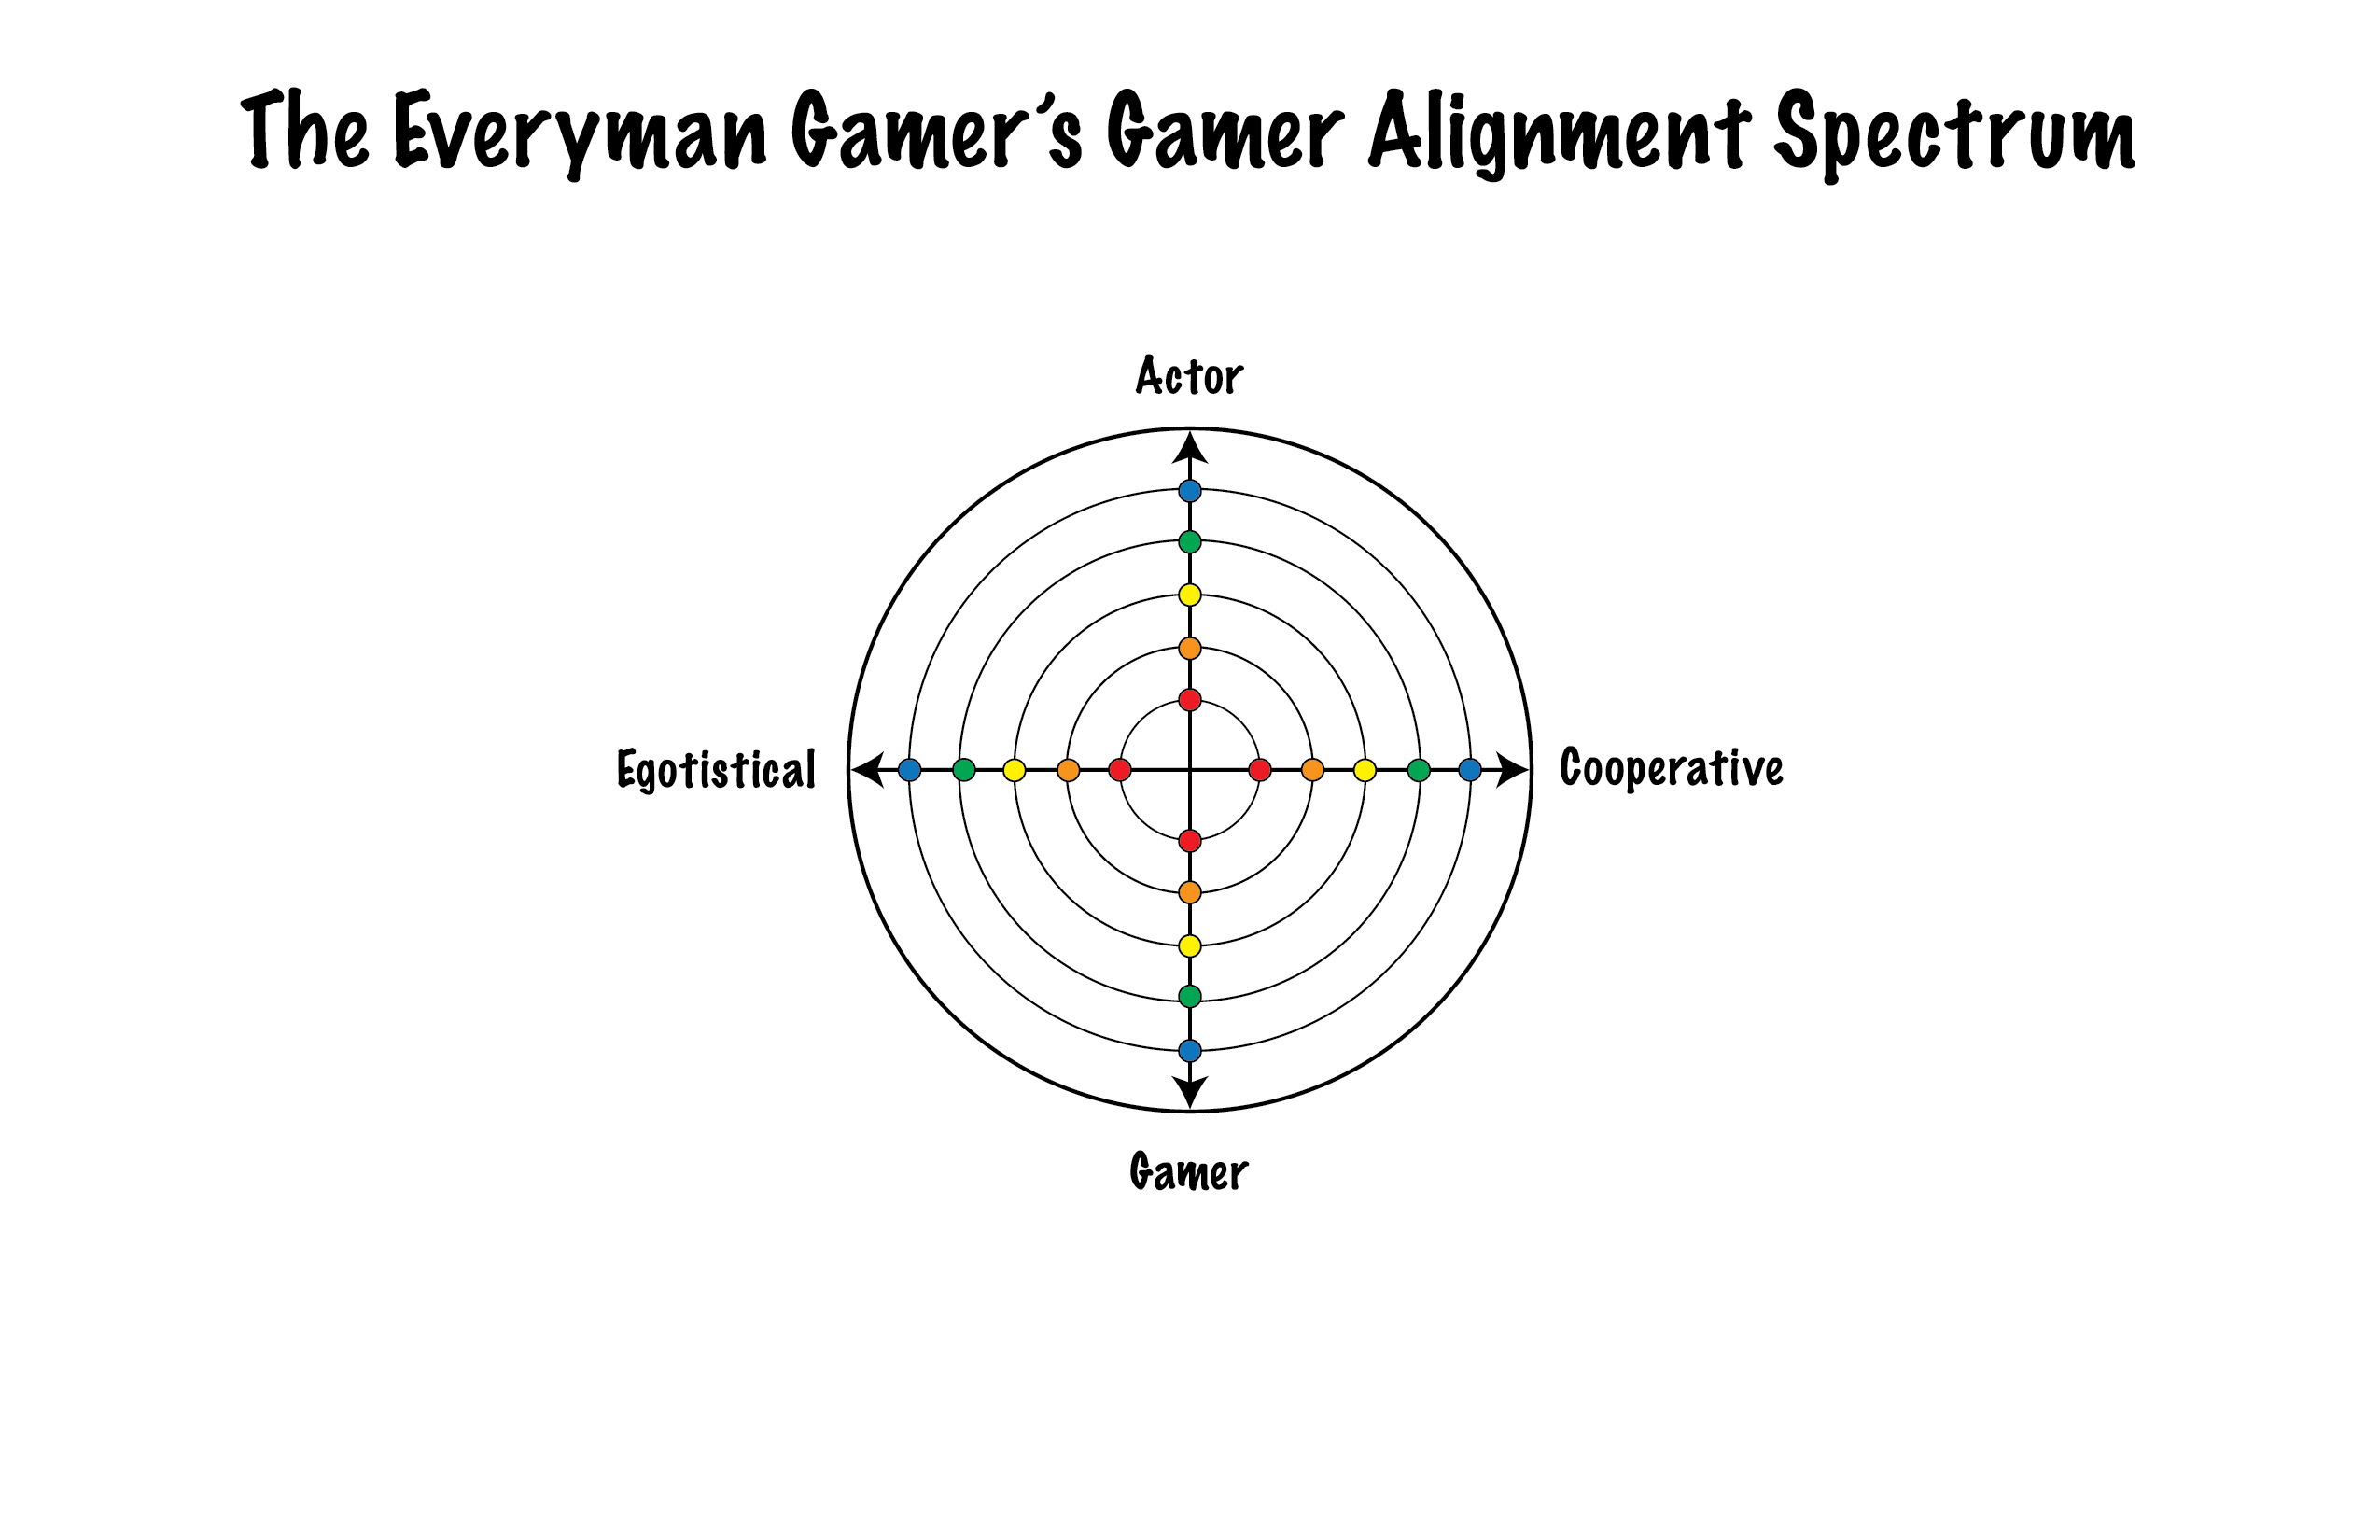 Gamer Alignment Spectrum